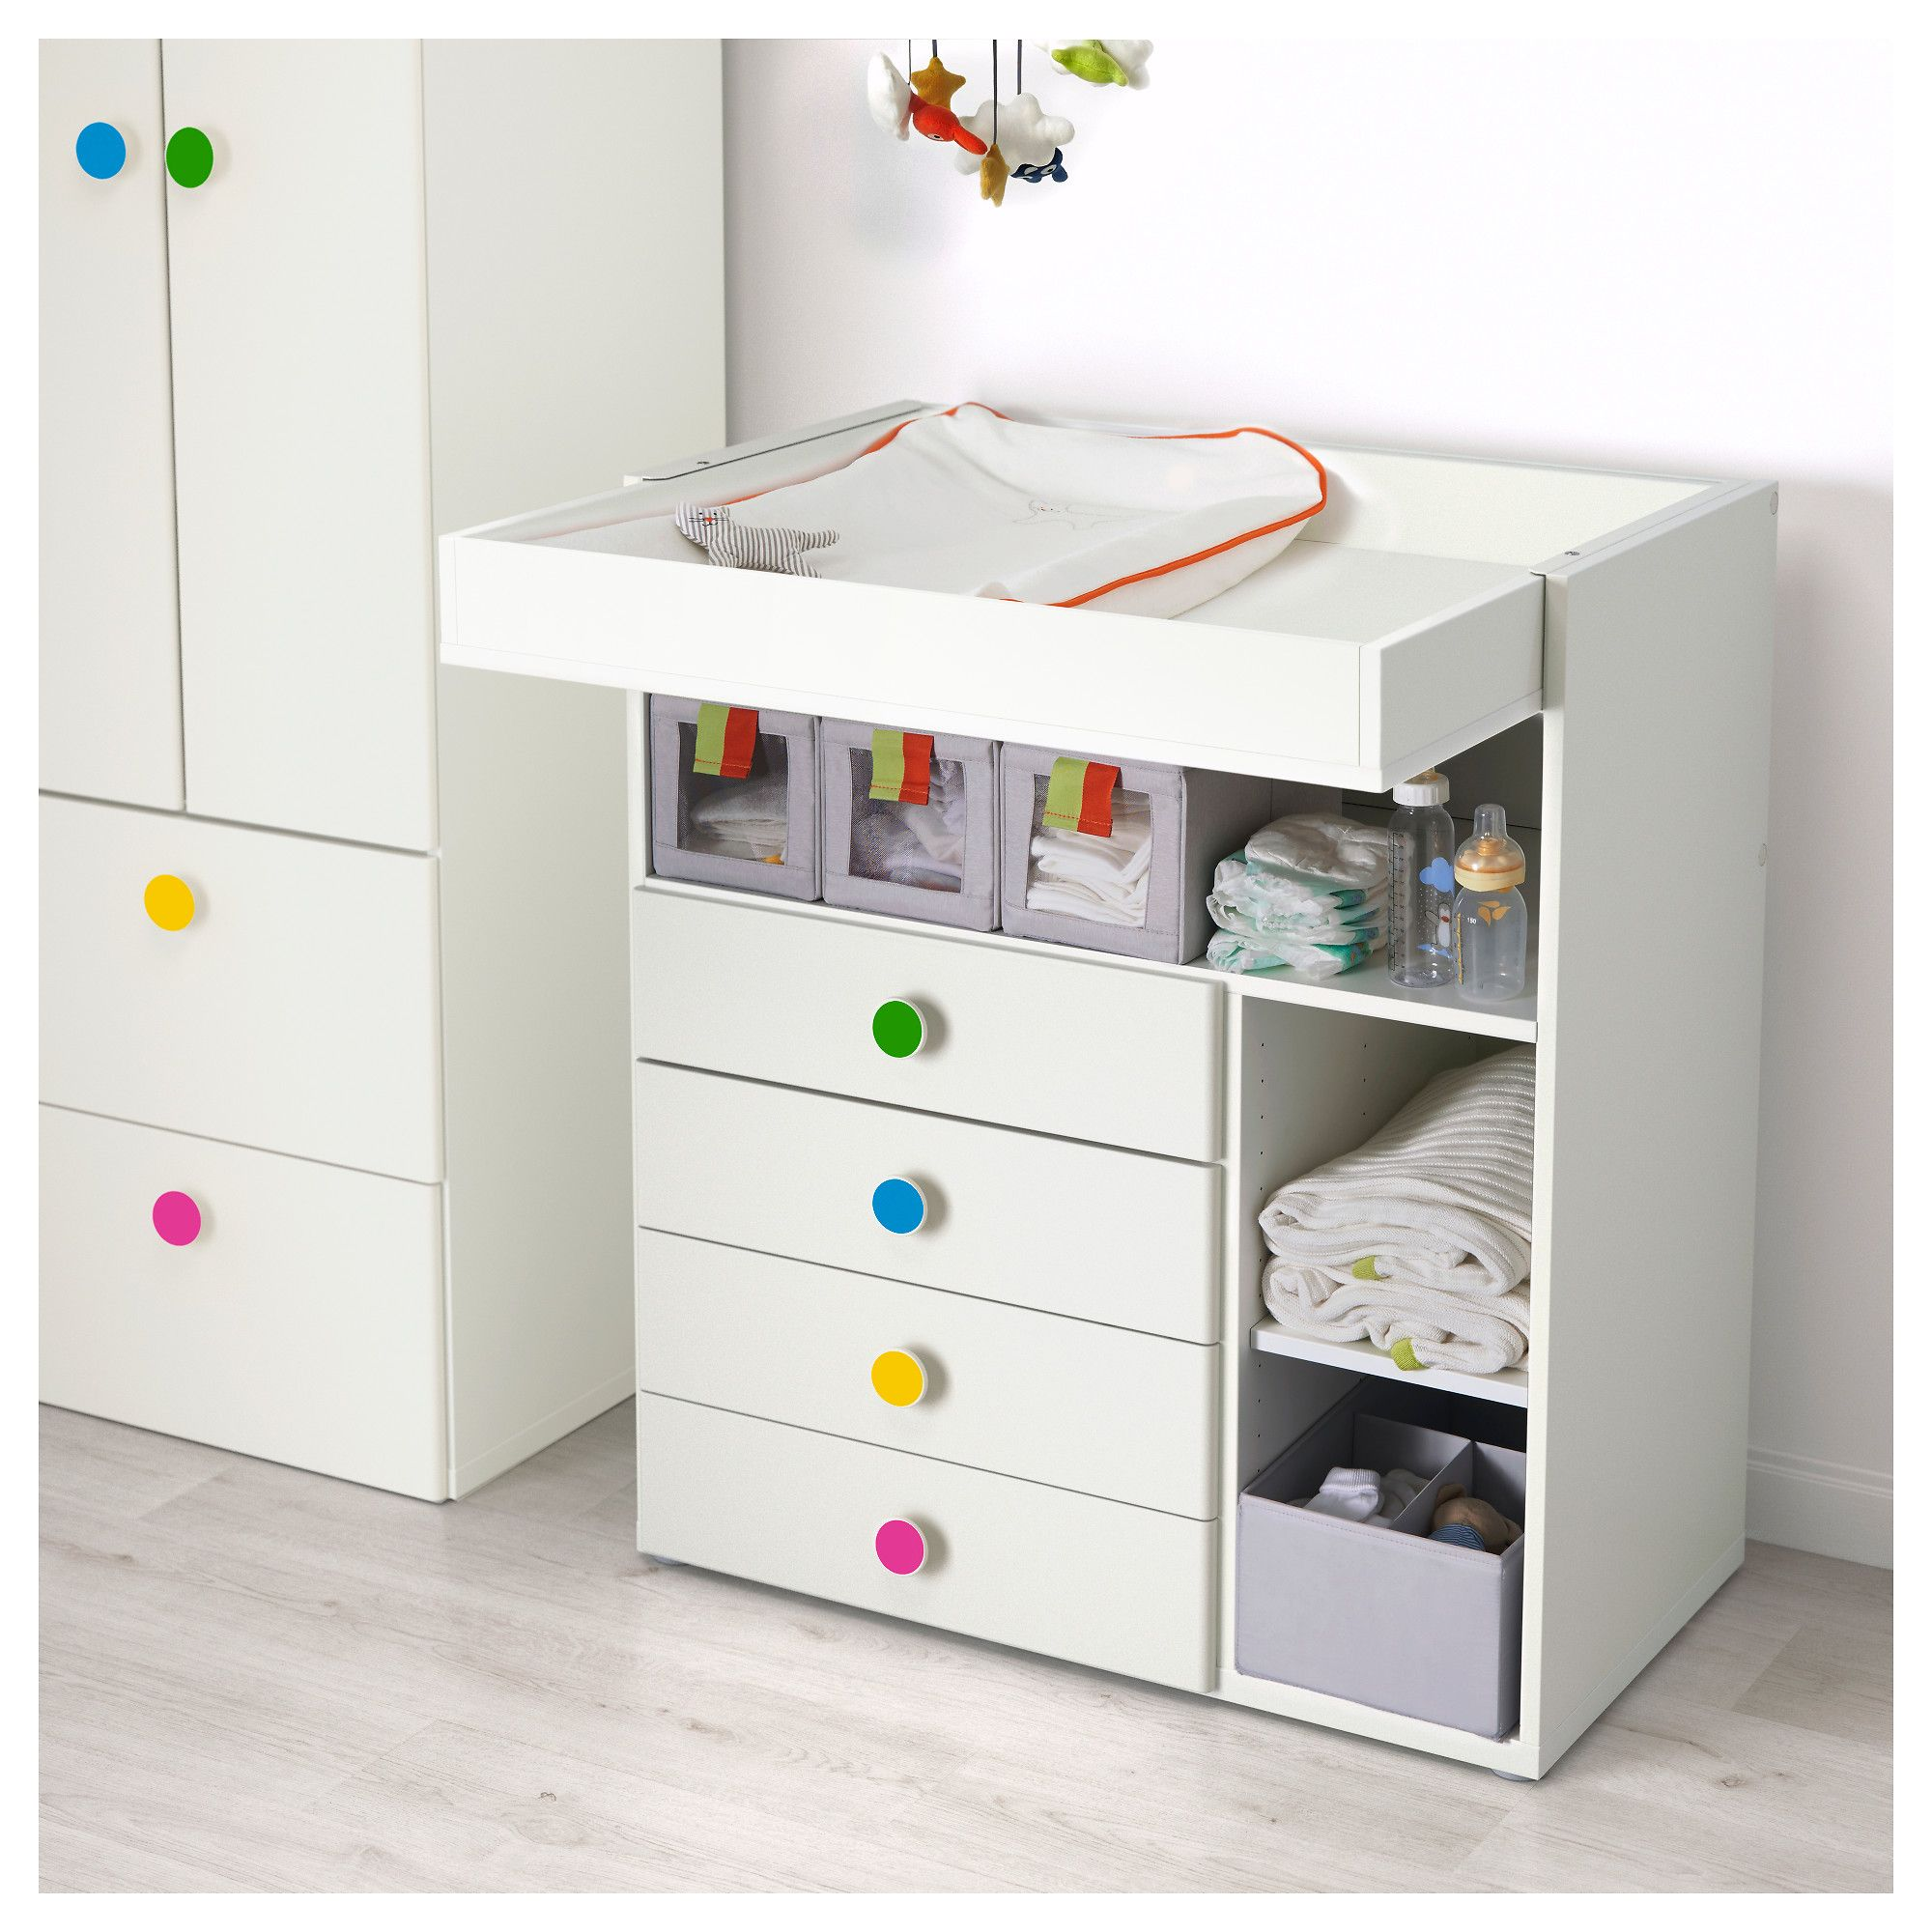 Ikea Stuva F Lja Changing Table With 4 Drawers White  # Ikea Etegere Cube Modulo Bois